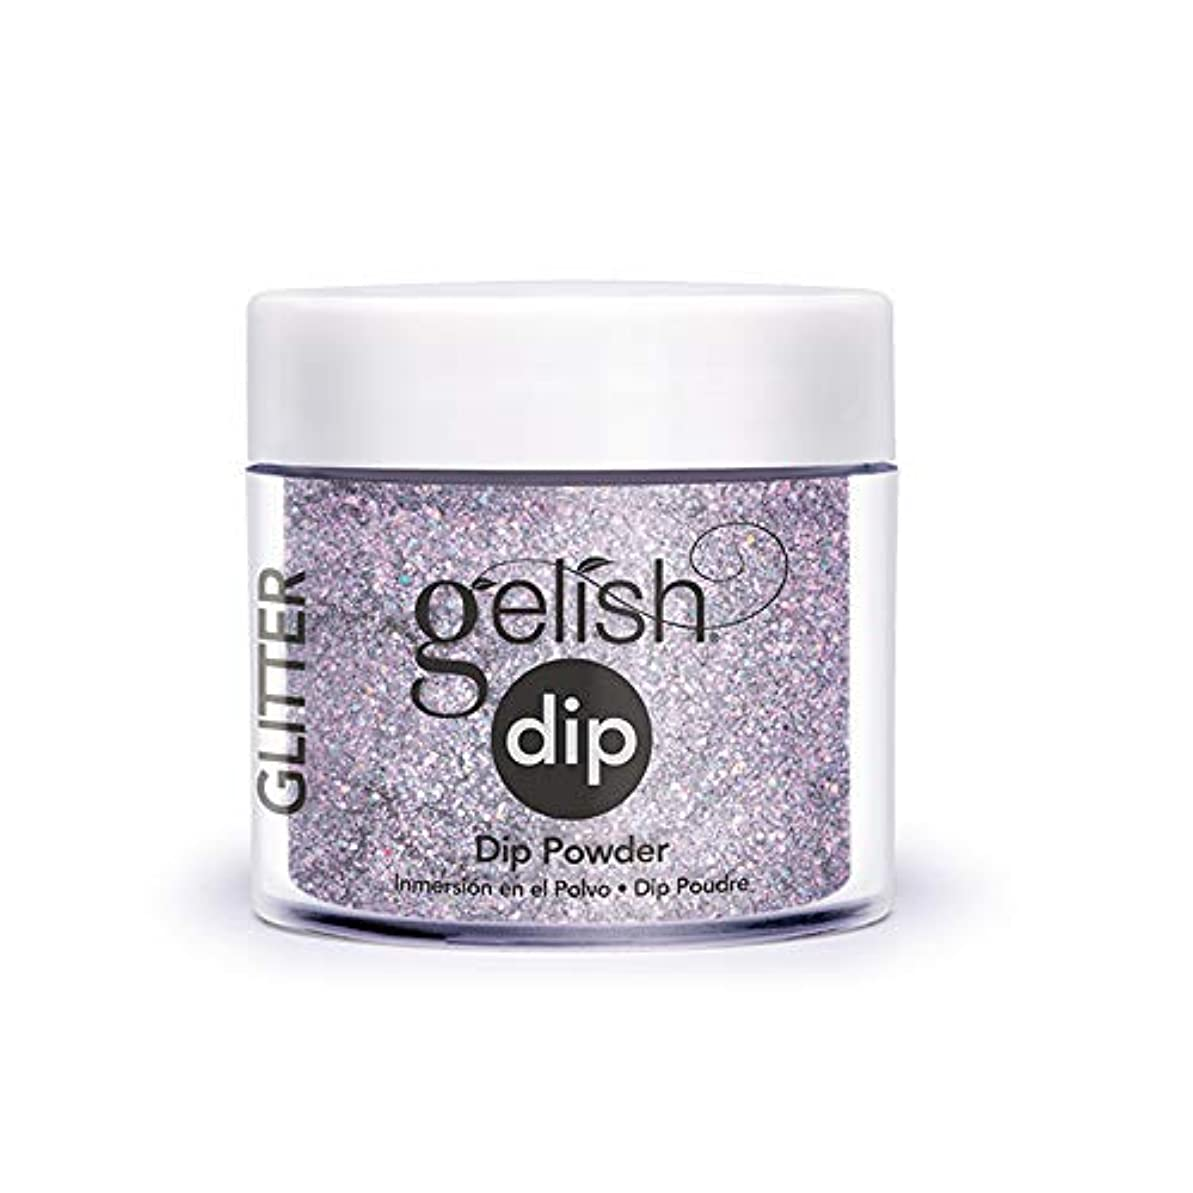 やさしい中止します課すHarmony Gelish - Acrylic Dip Powder - Make A Statement - 23g / 0.8oz